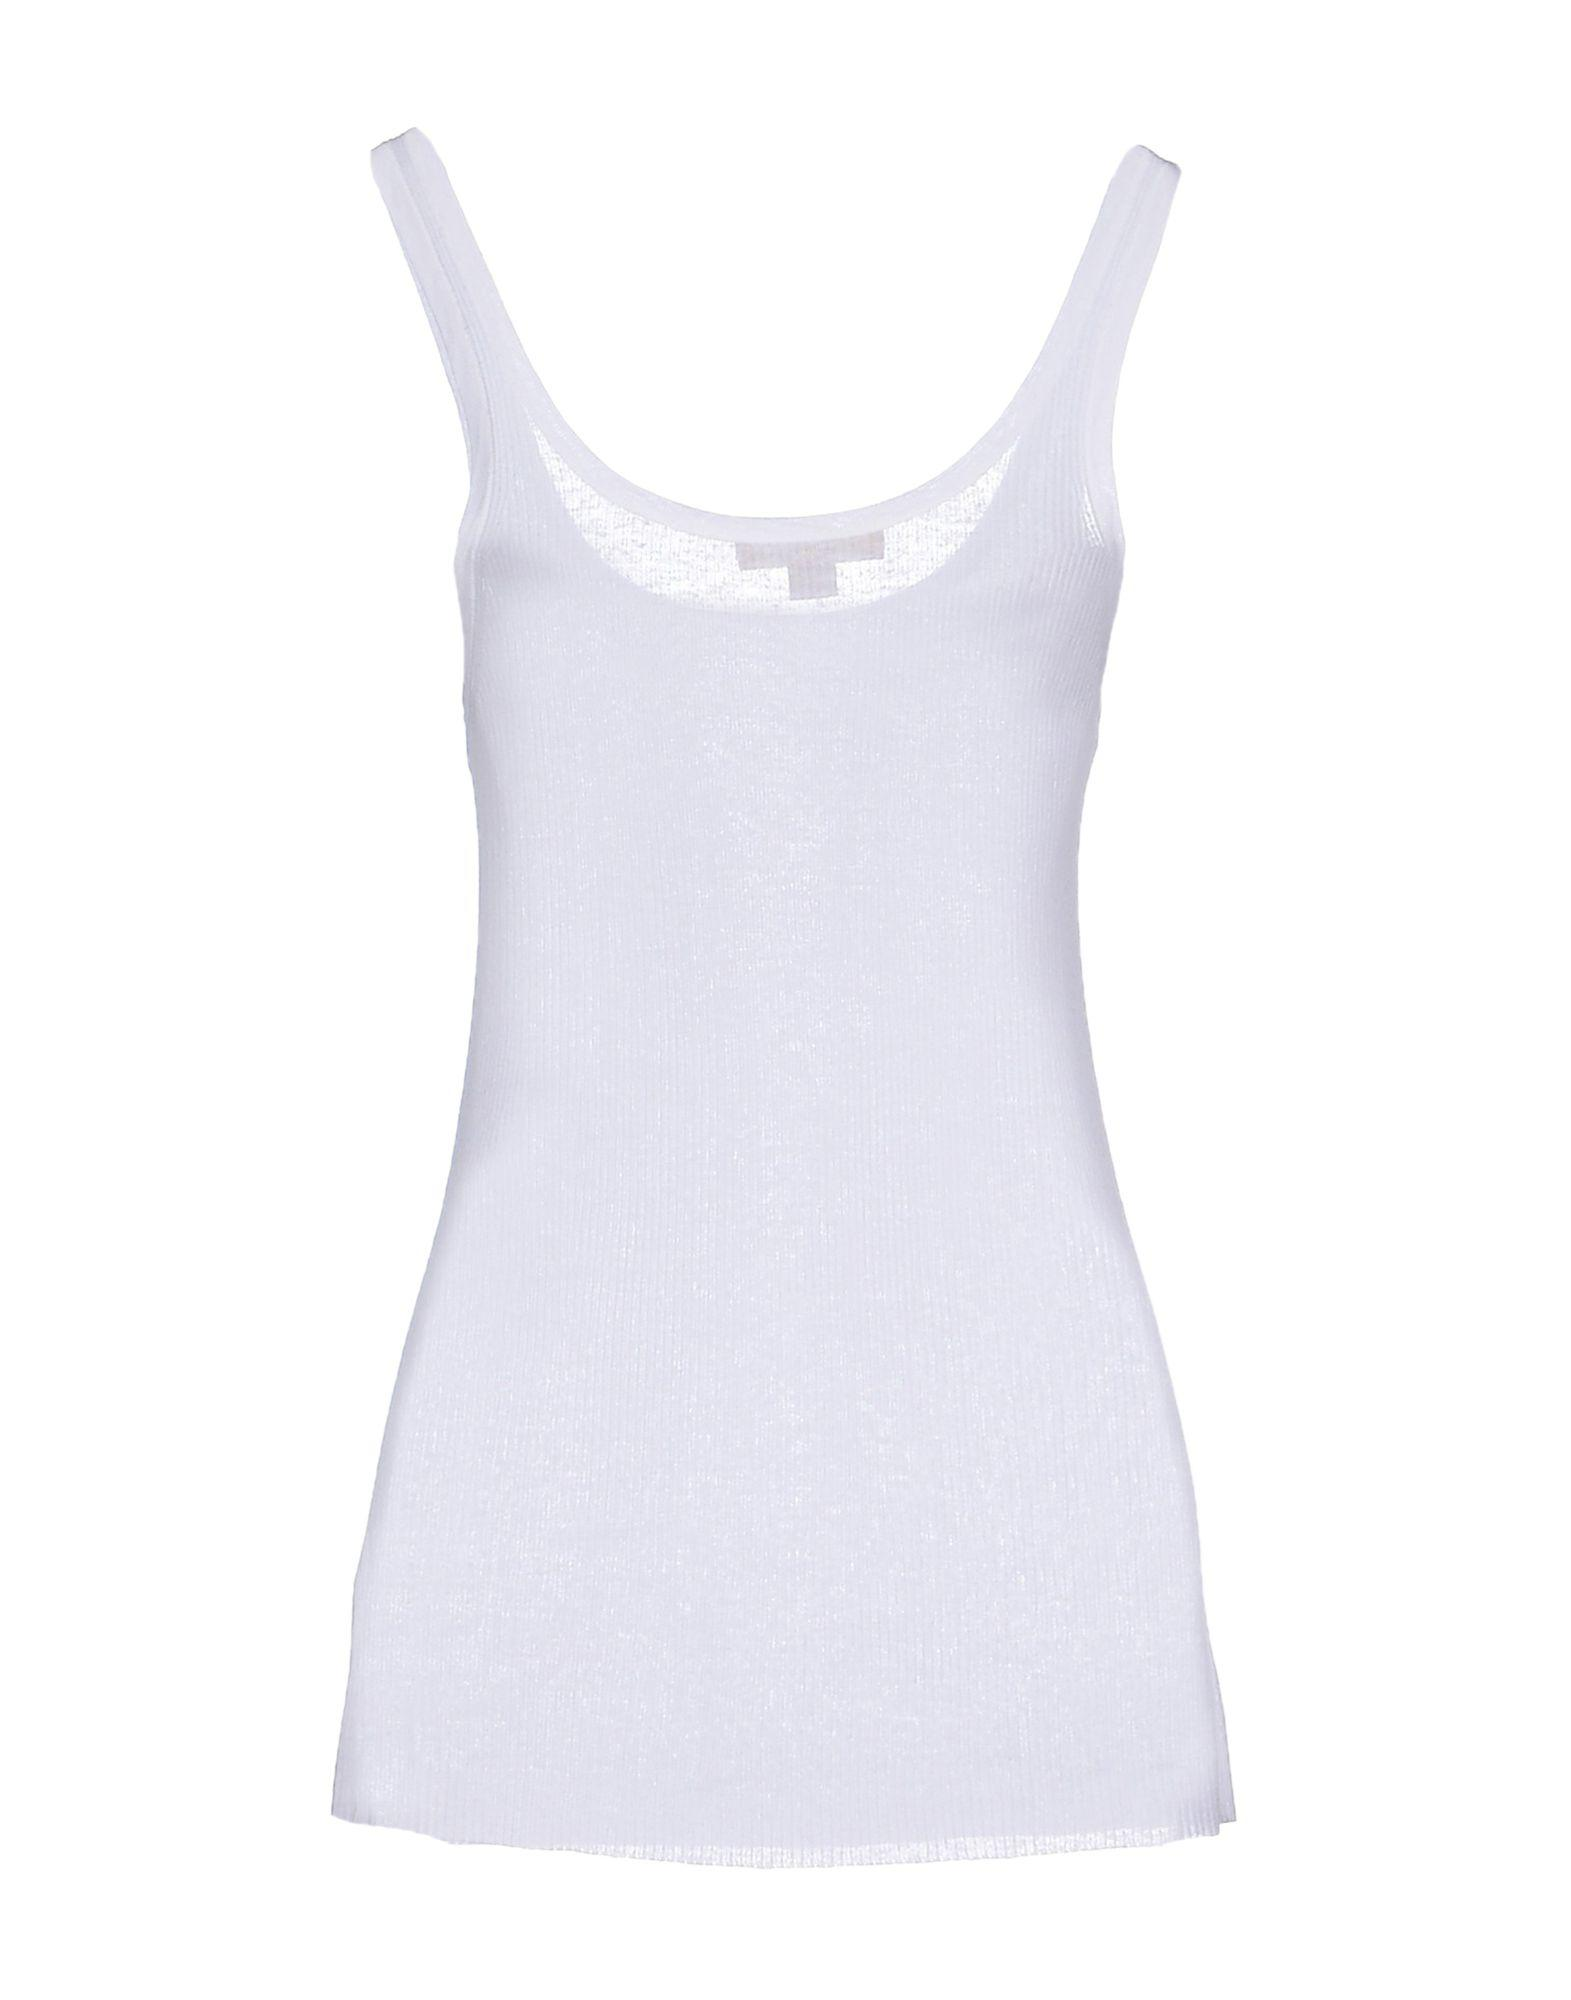 a1aa6051a2b91 Lyst - Michael Kors Vest in White